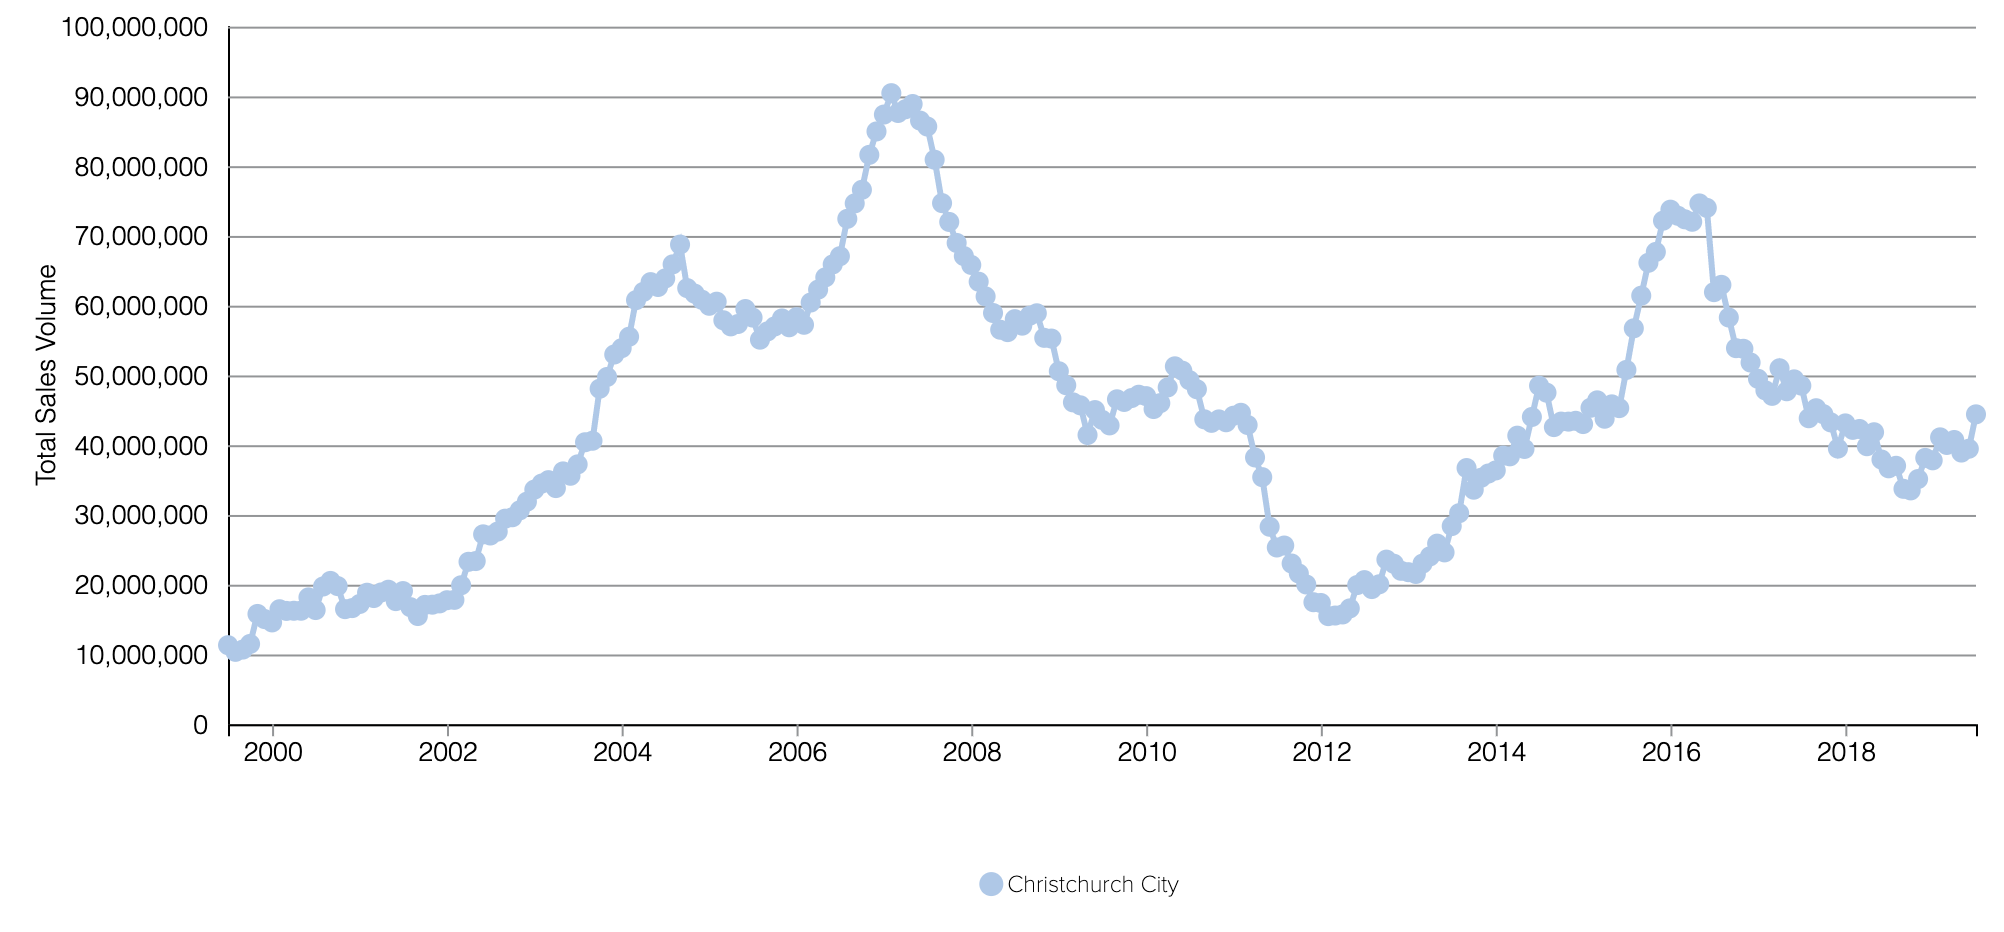 CHC City Annual Apartment Sales Value.png